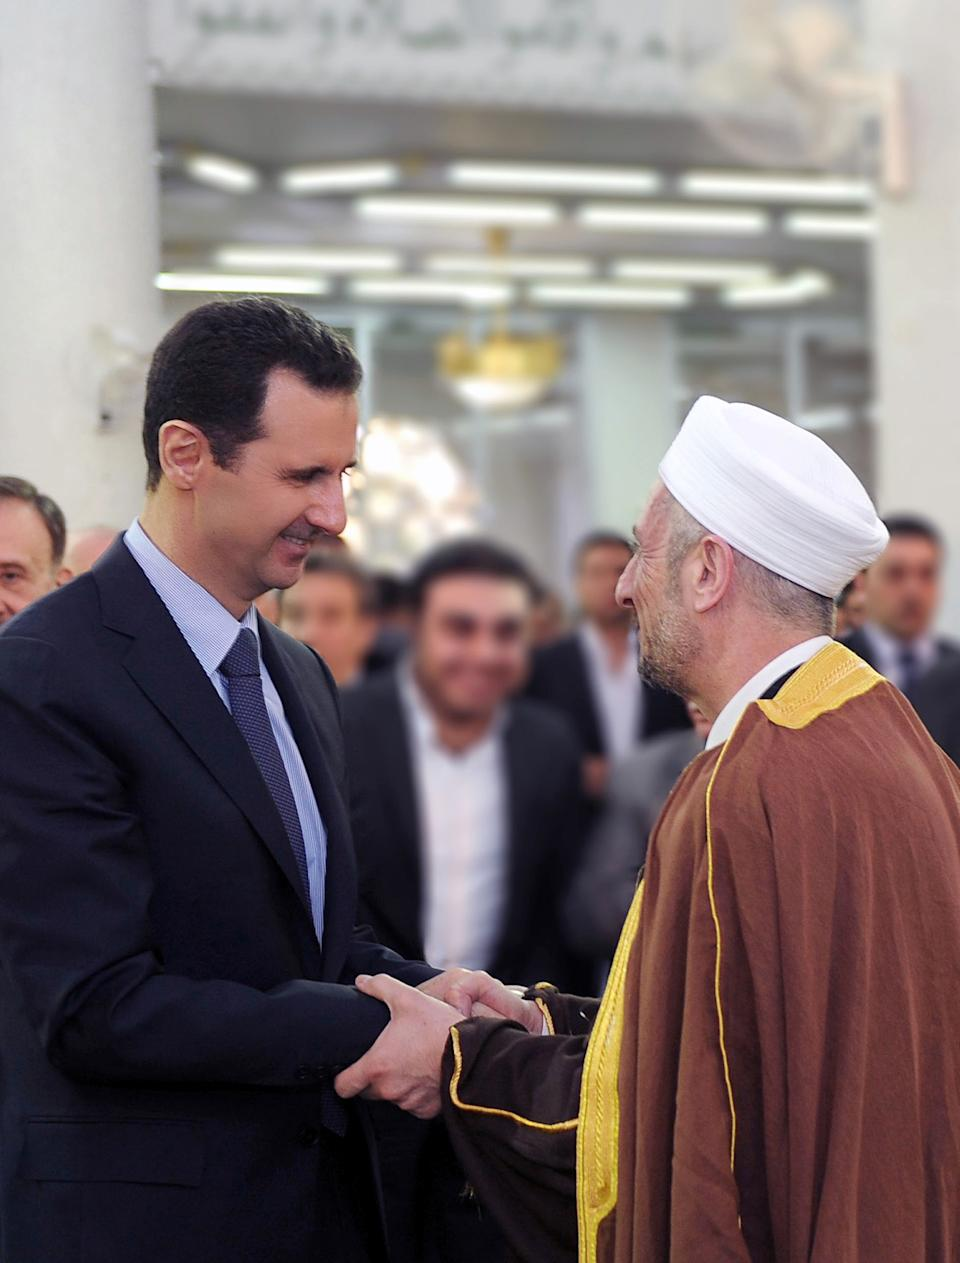 In this photo released by the Syrian official news agency SANA, Syrian President Bashar Assad, left, shakes hands with a Syrian man, right, after prayers on the first day of Eid al-Adha at the Sayeda Hassiba mosque, in Damascus, Syria, Tuesday, Oct. 15, 2013. (AP Photo/SANA)